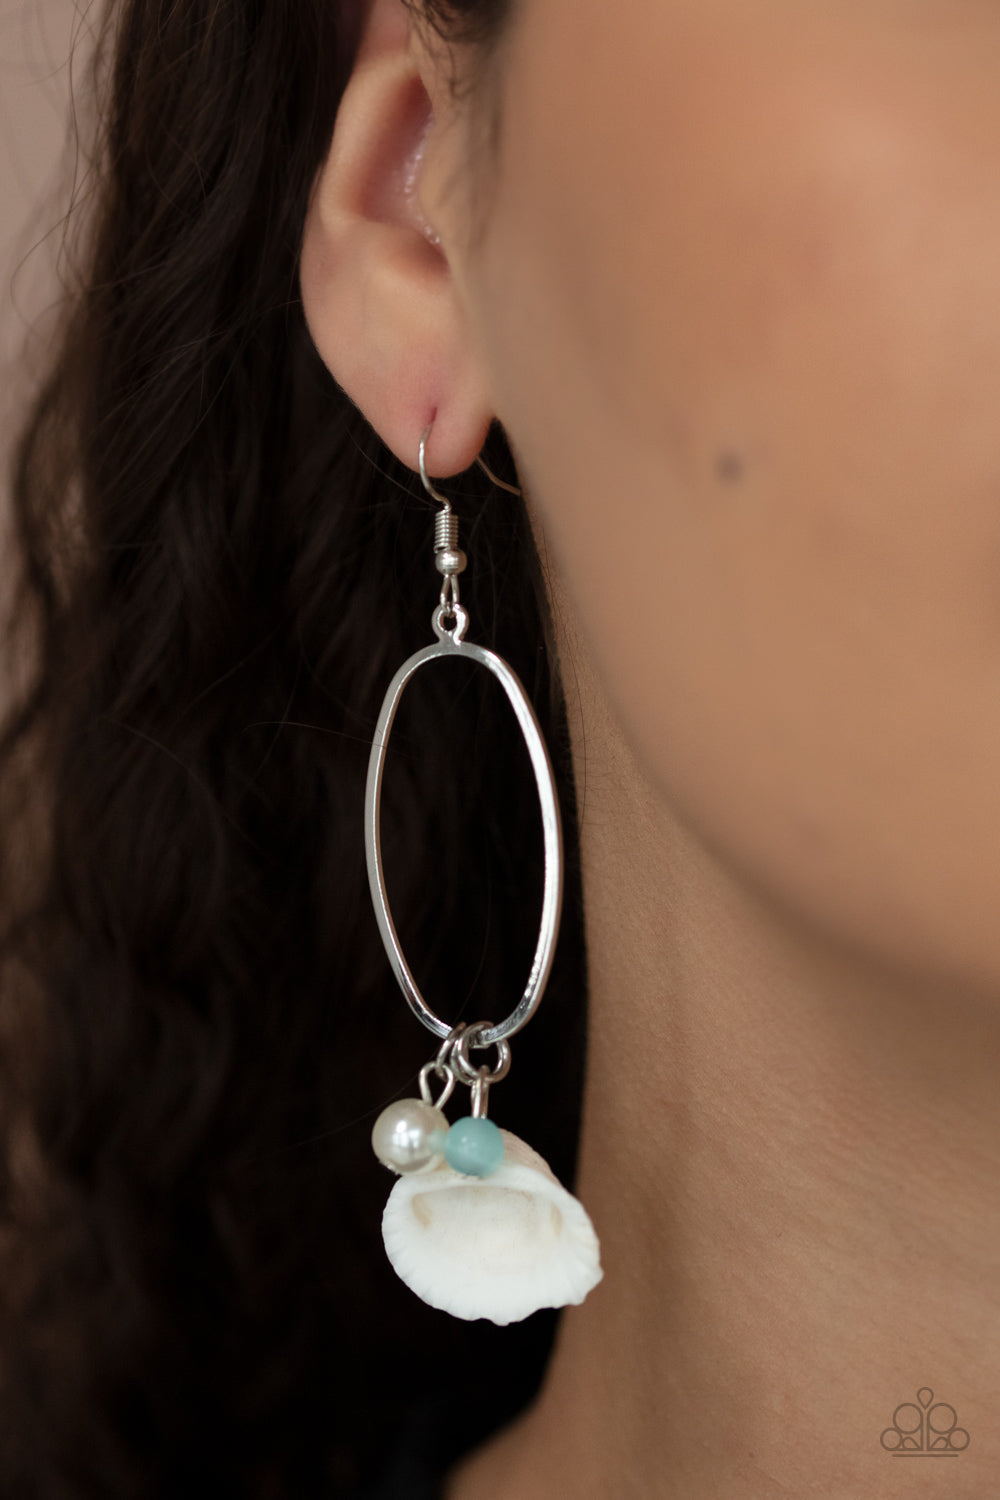 This Too SHELL Pass - Blue - Paparazzi Earring